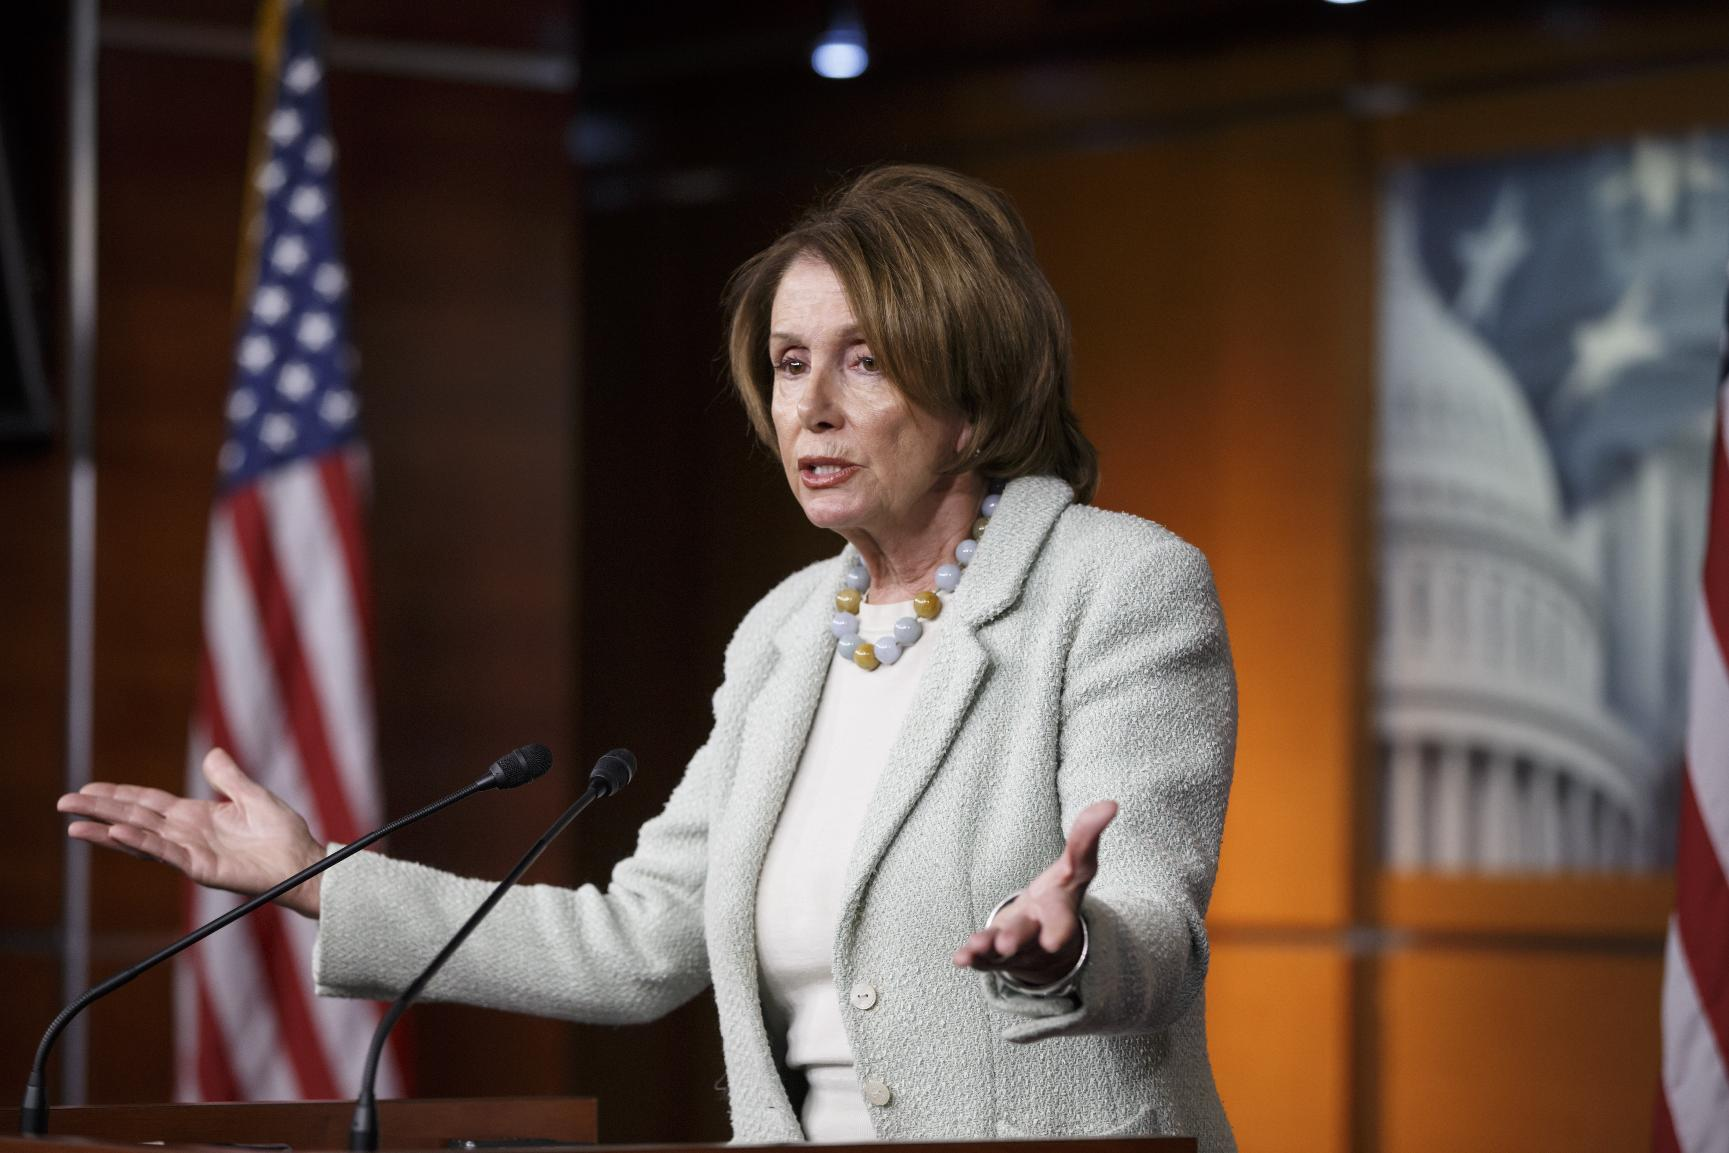 Dems still miffed about Israeli leader's address to Congress